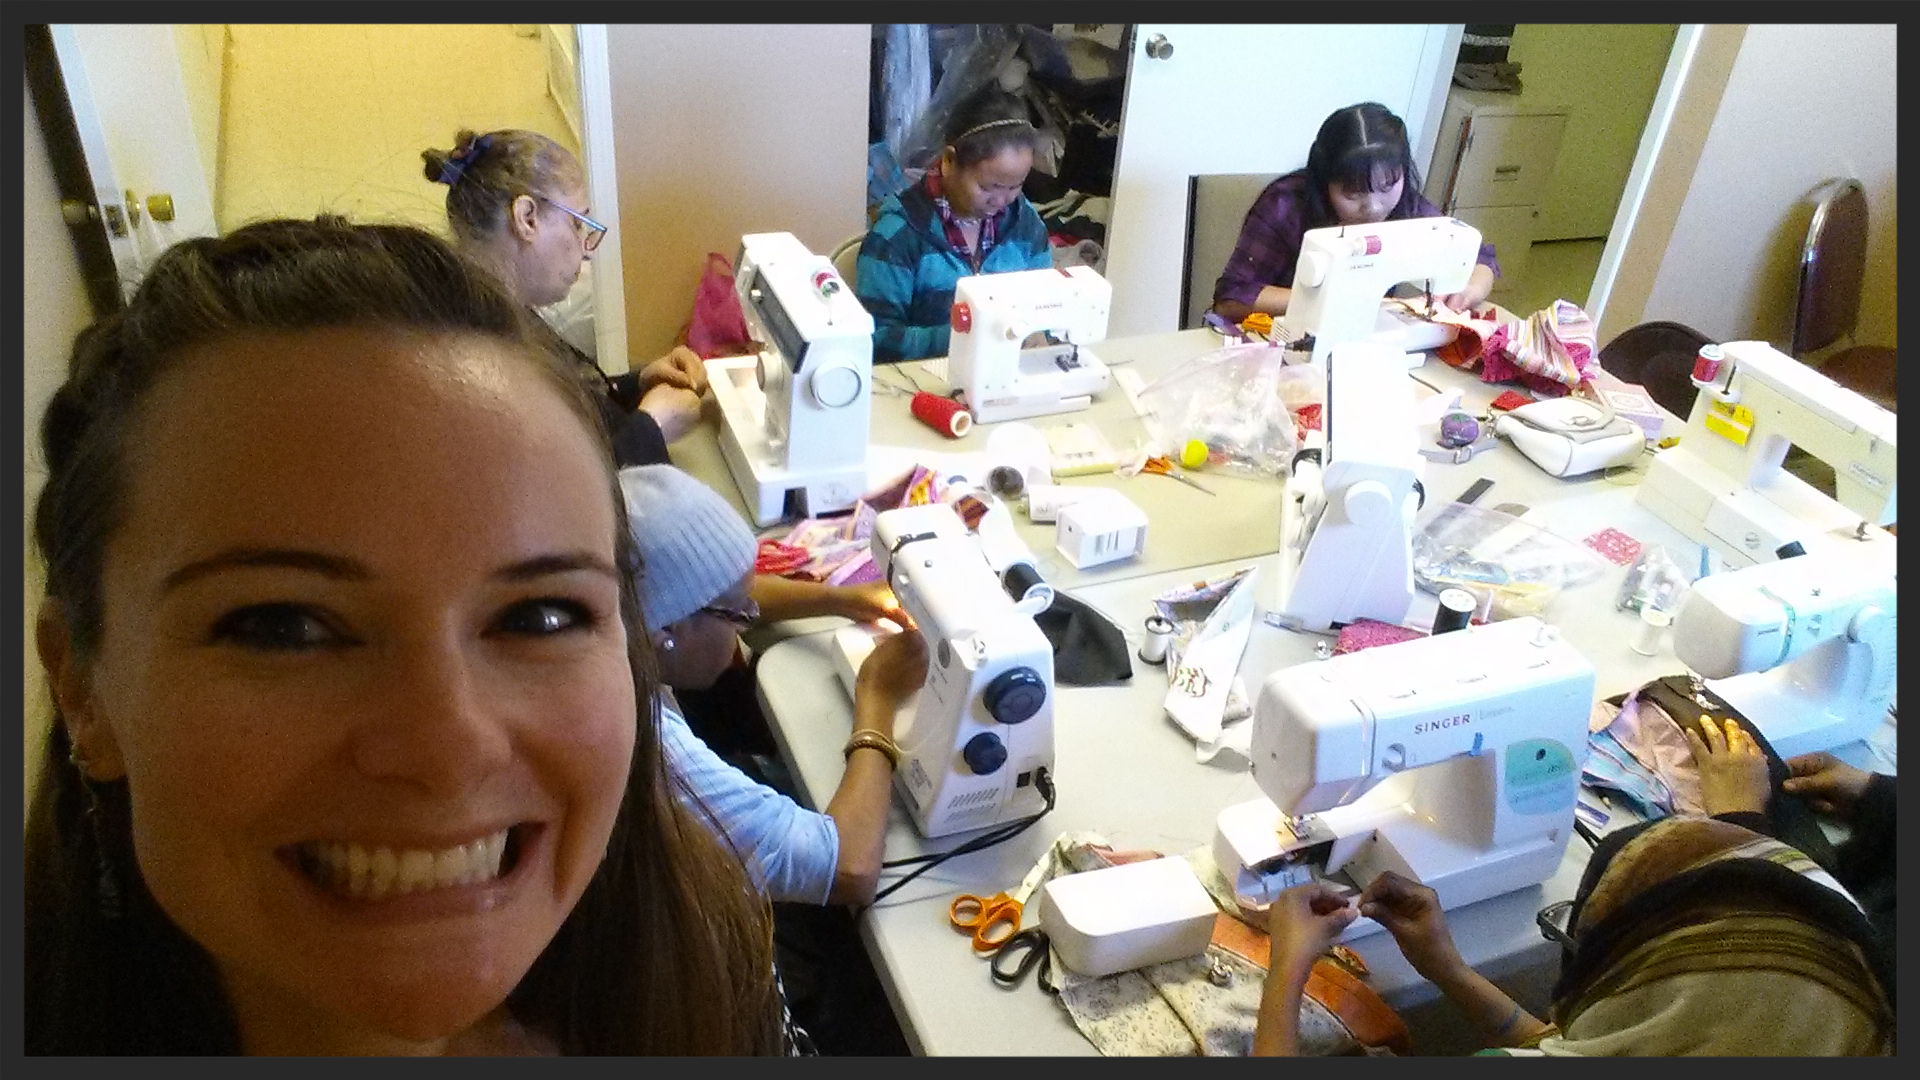 Friday morning sewing class at the Center for Refugee Services in San Antonio